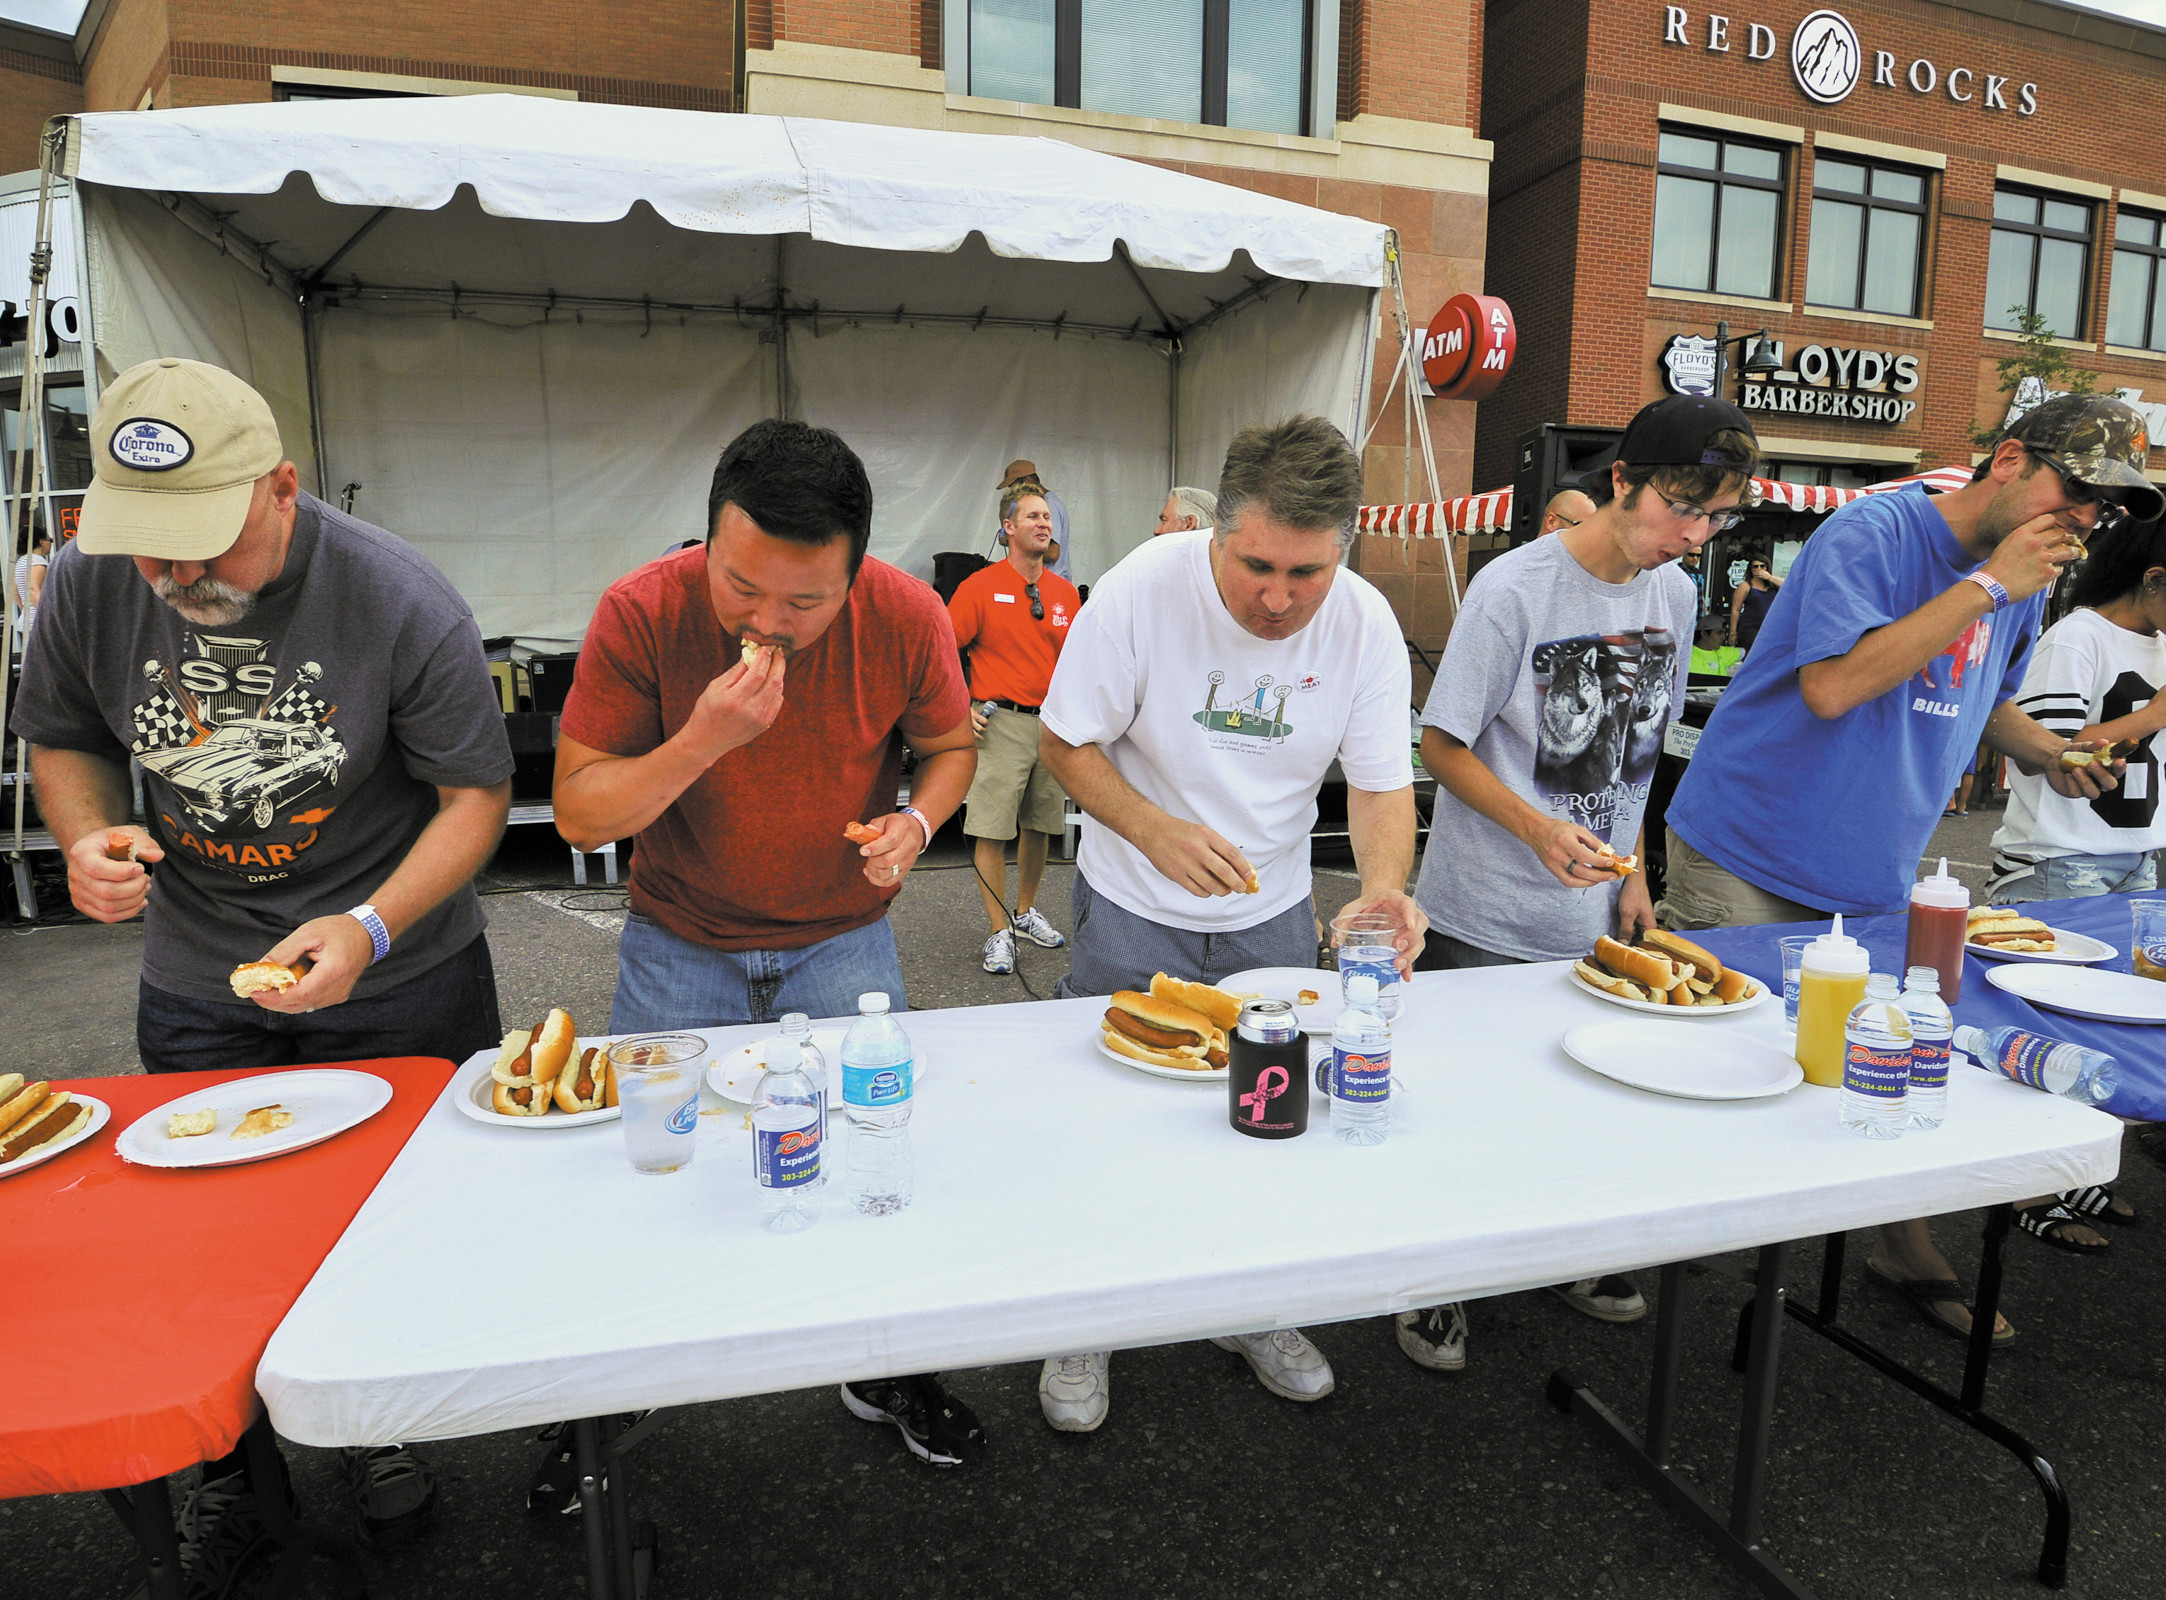 Competitors in the HRCA Hot Dog Eating contest try to see how many they can consume in 5 minutes on July 4.